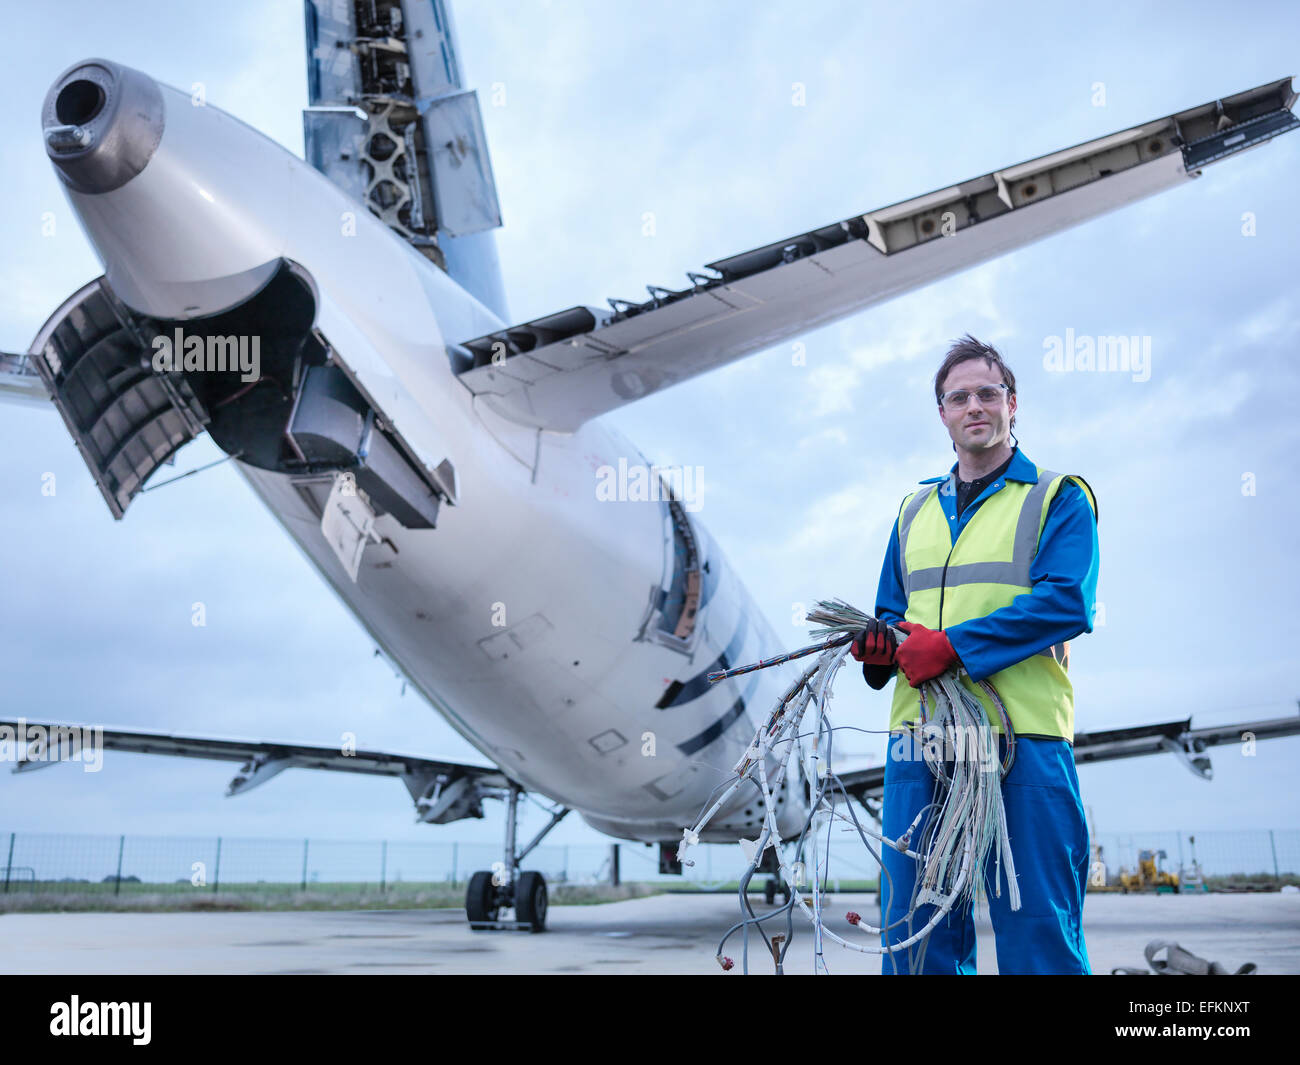 Engineer recycling aircraft parts on runway, portrait - Stock Image